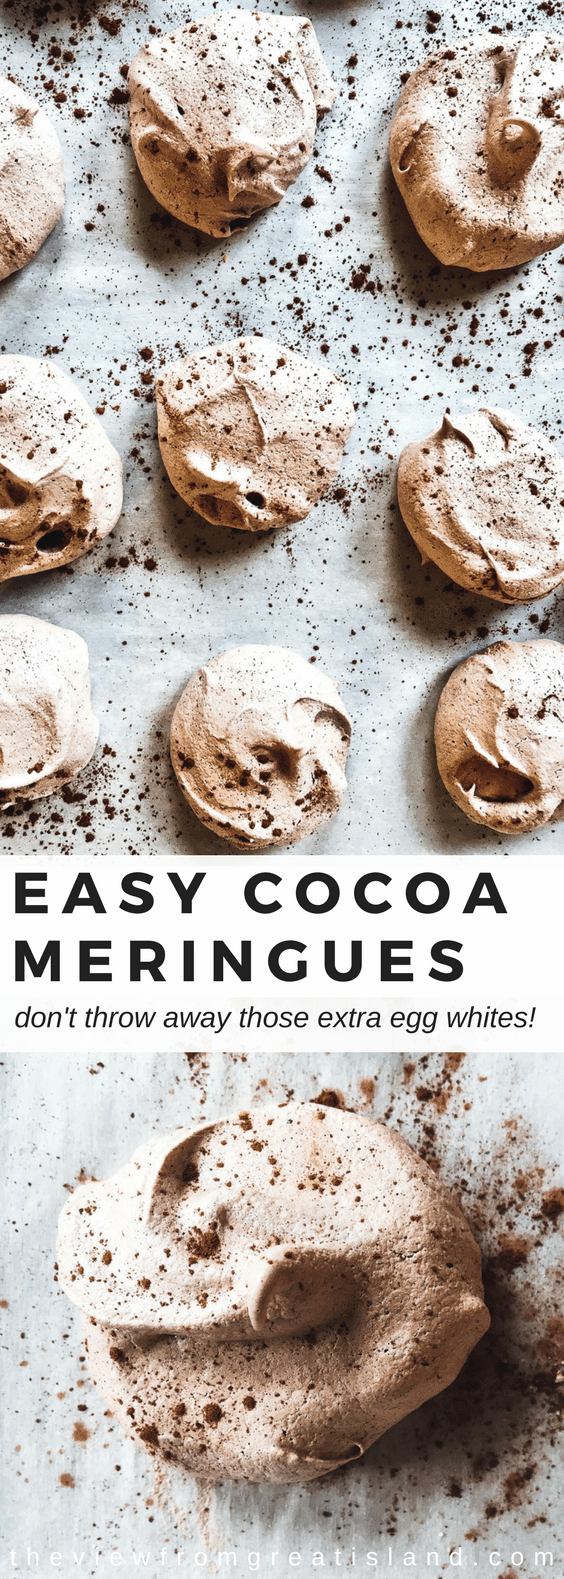 These easy cocoa meringues are the minimalist of cookies ~ just a few simple ingredients whip up into something magical! Meringues are a naturally gluten free, fat free treat! #COOKIES #DESSERT #GLUTENFREEDESSERT #GLUTENFREE #CHOCOLATECOOKIES #CHOCOLATE #FATFREE #LOWCALORIE #GLUTENFREECOOKIES #EGGWHITES #MERINGUECOOKIES #HEALTHYDESSERT